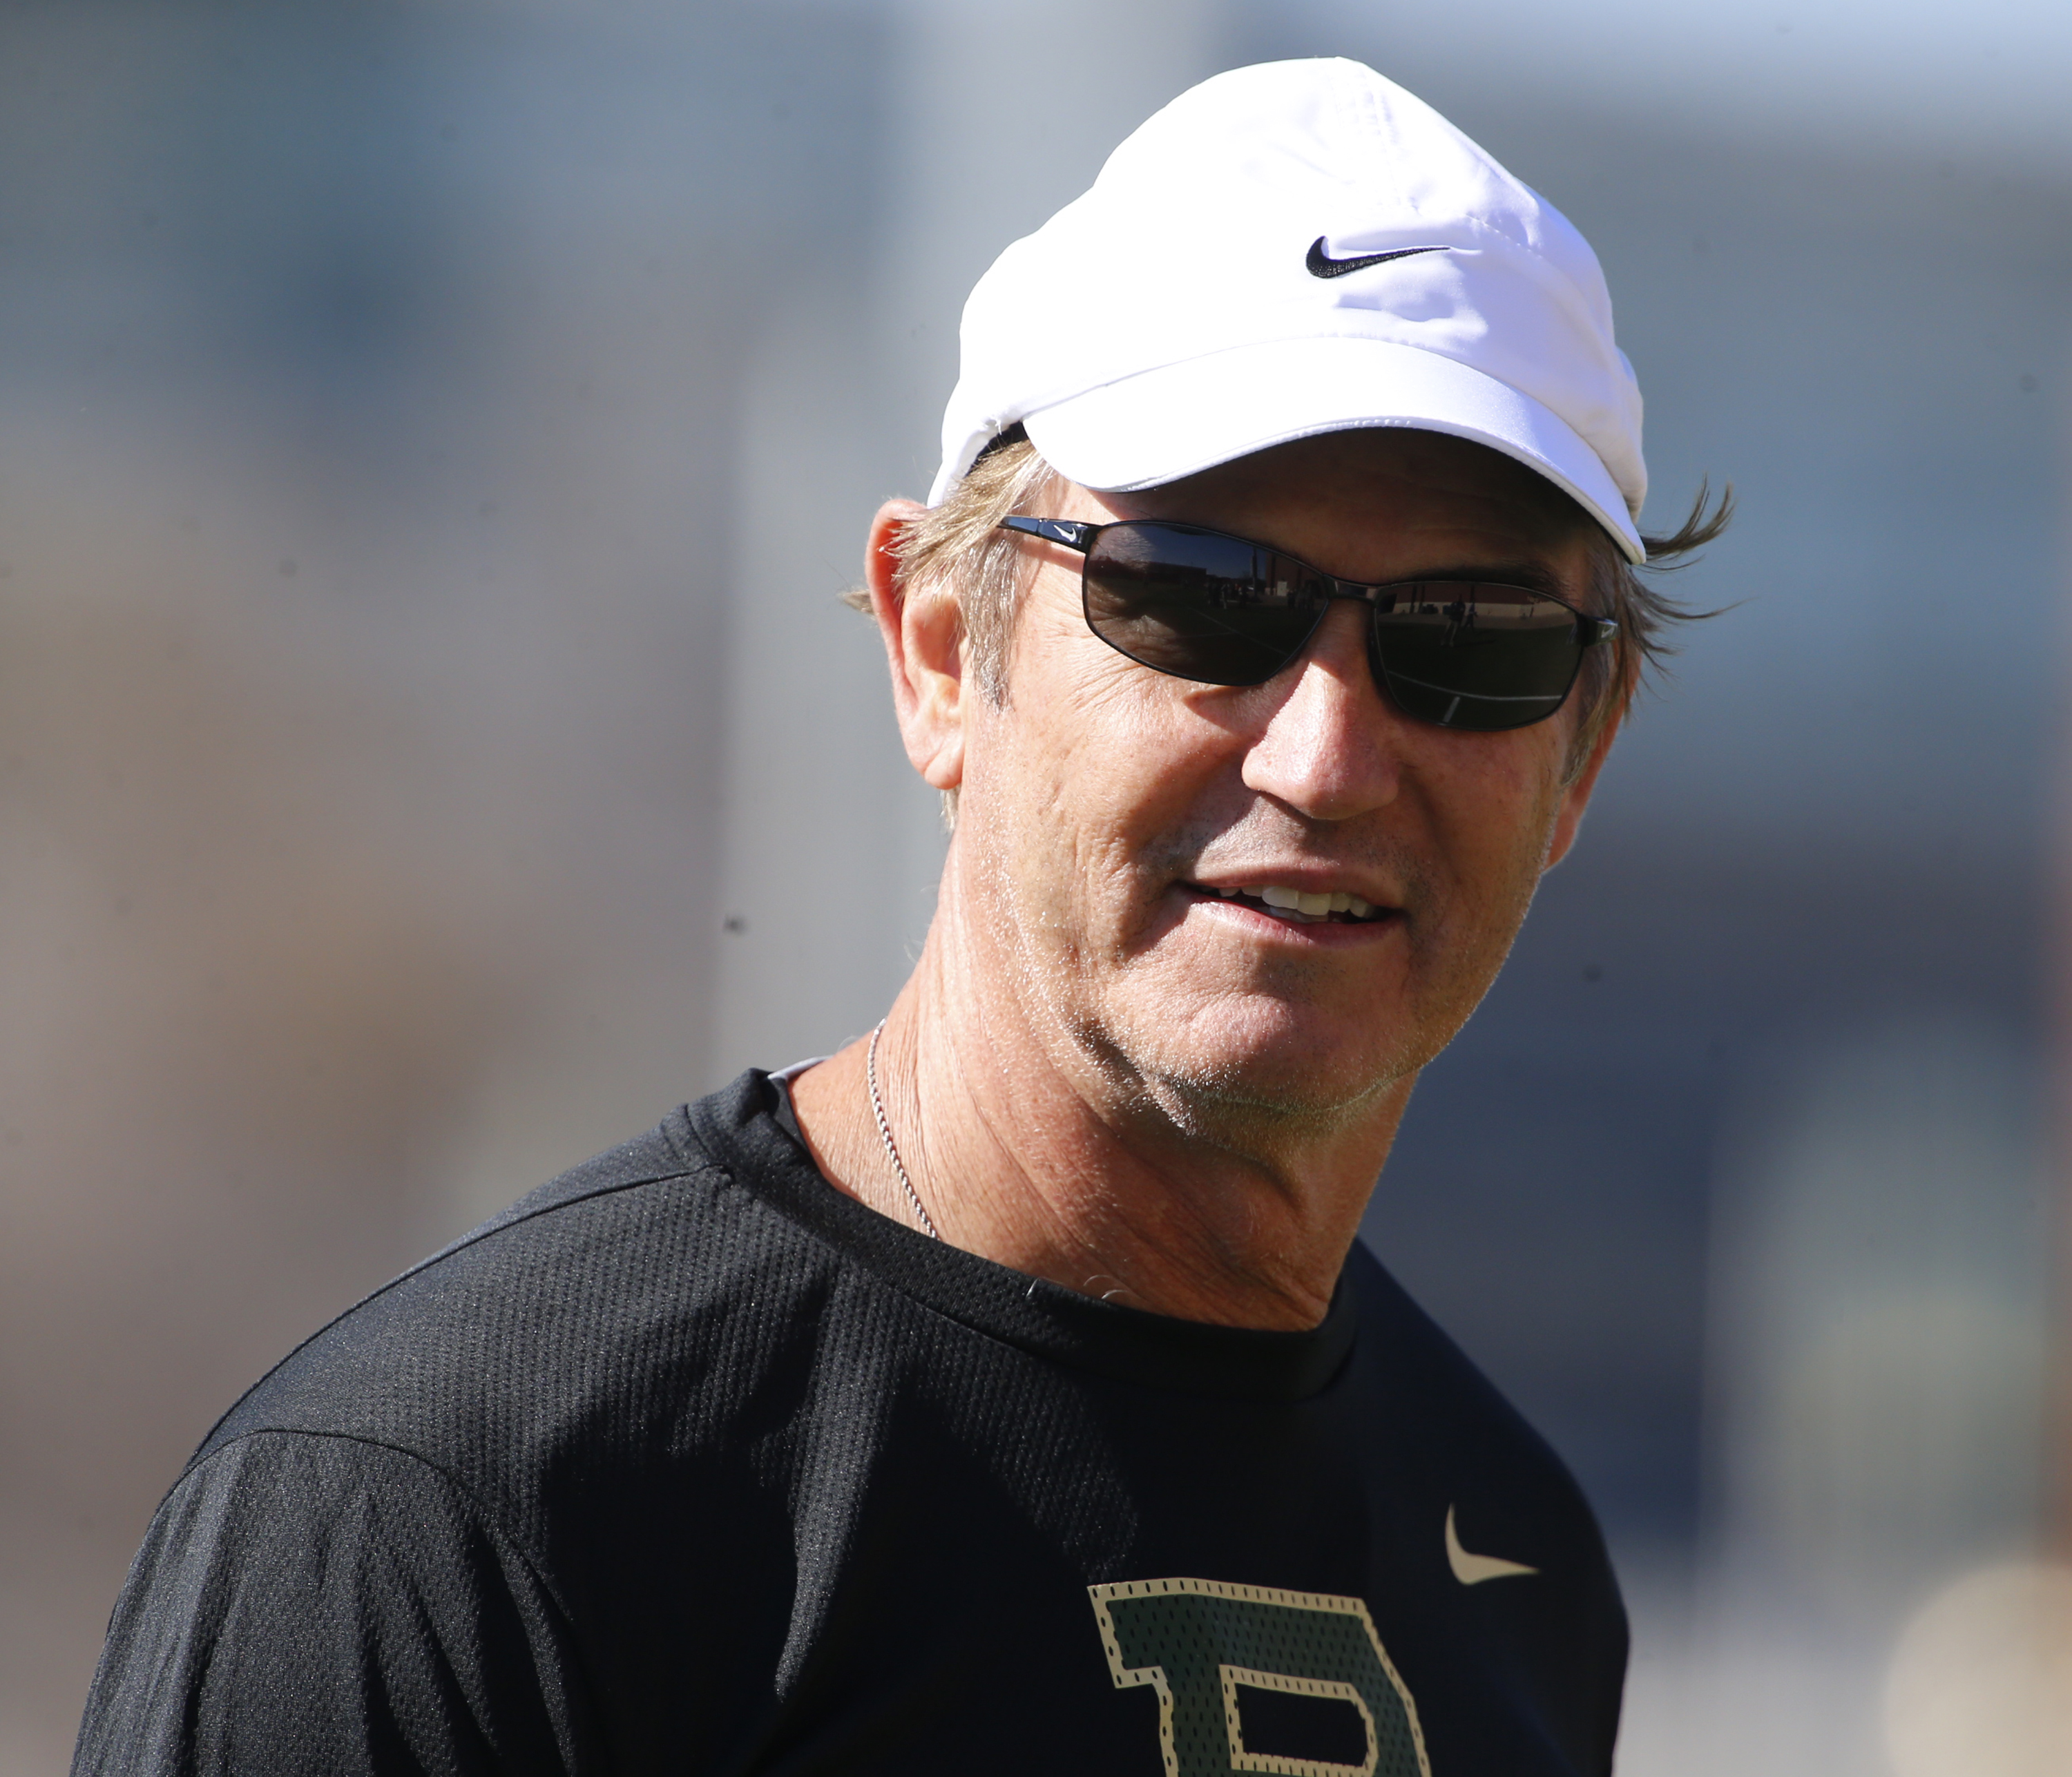 Baylor head football coach Art Briles looks on during the first day of spring football drills, Thursday, Feb. 25, 2016, in Waco, Texas. (Rod Aydelotte/Waco Tribune Herald via AP) MANDATORY CREDIT